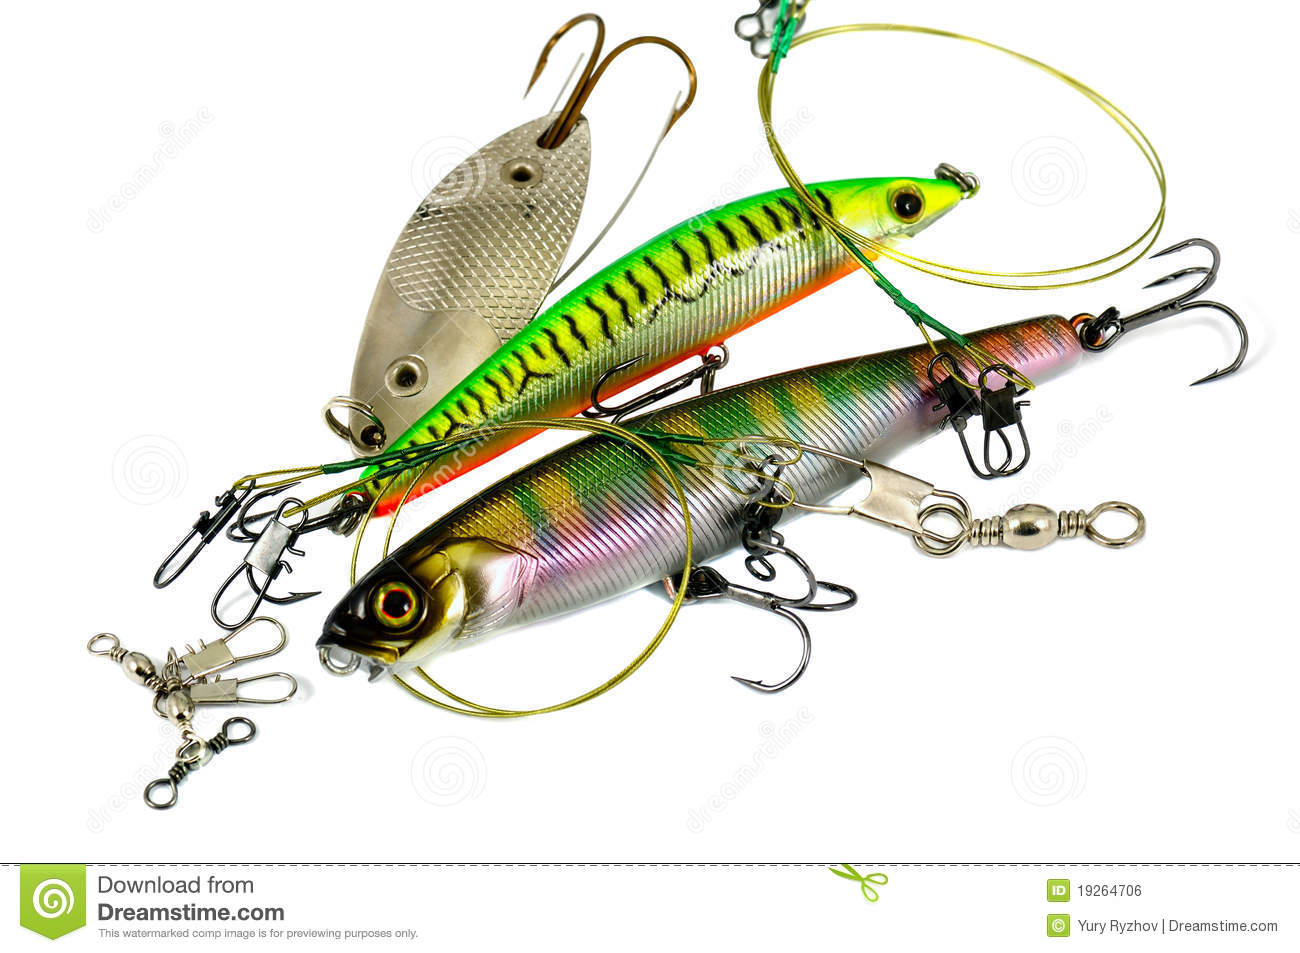 Fishing gear fishing supplies equipment autos post for Fishing equipment stores